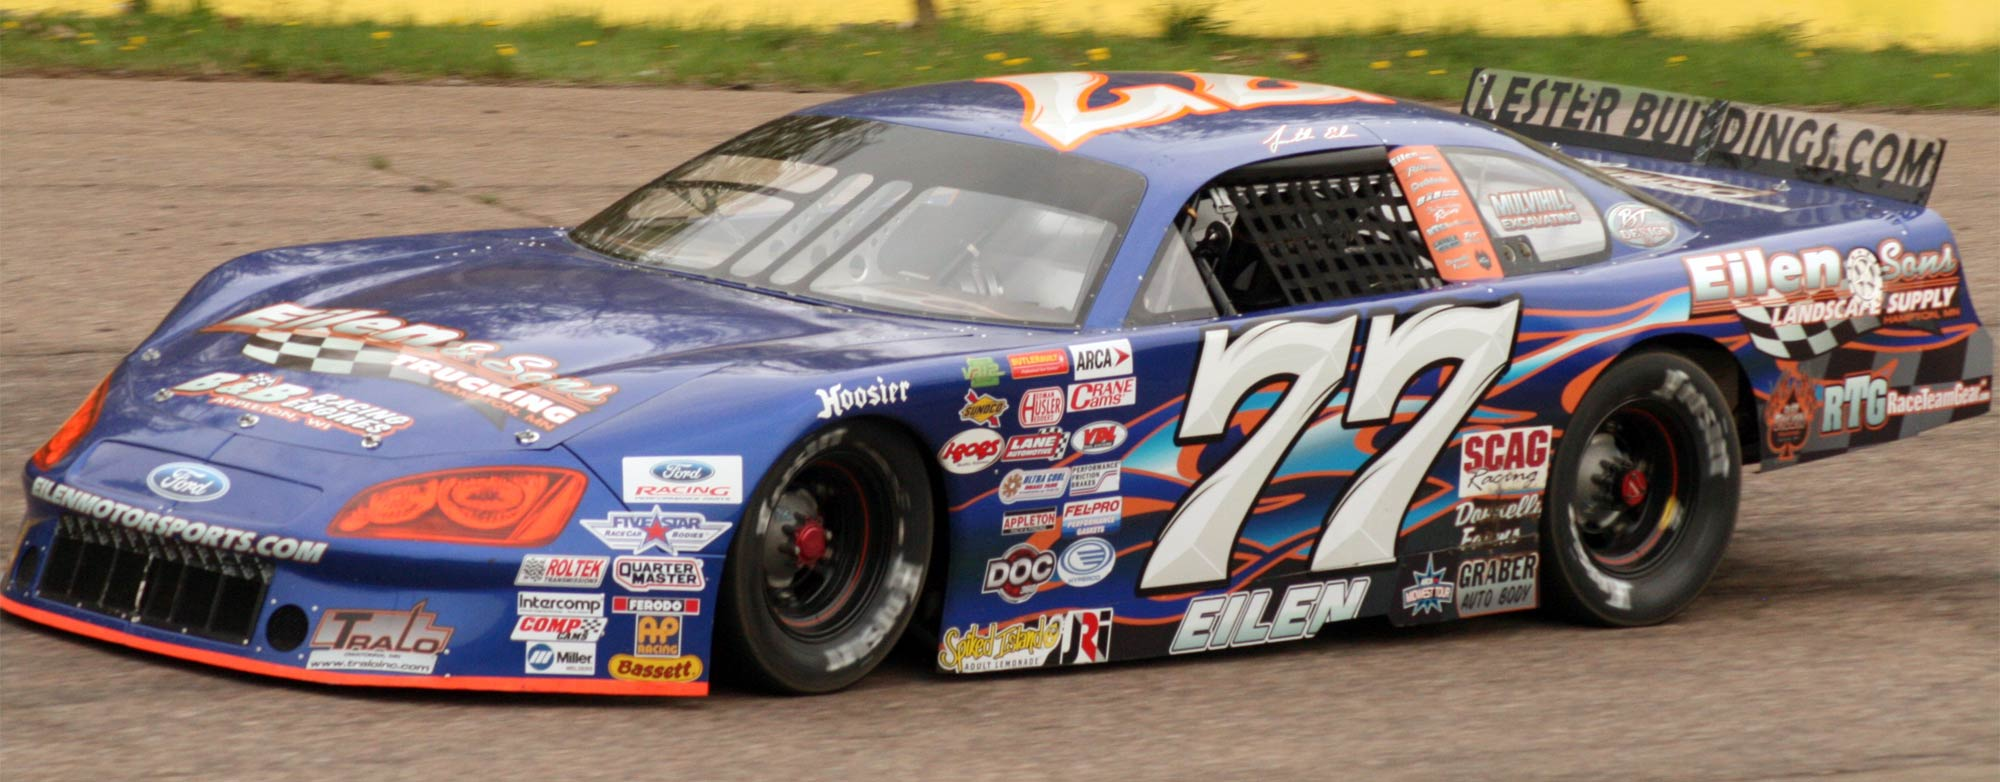 Elien & Sons Motorsports' #77 Car Driven by Jonathan Eilen